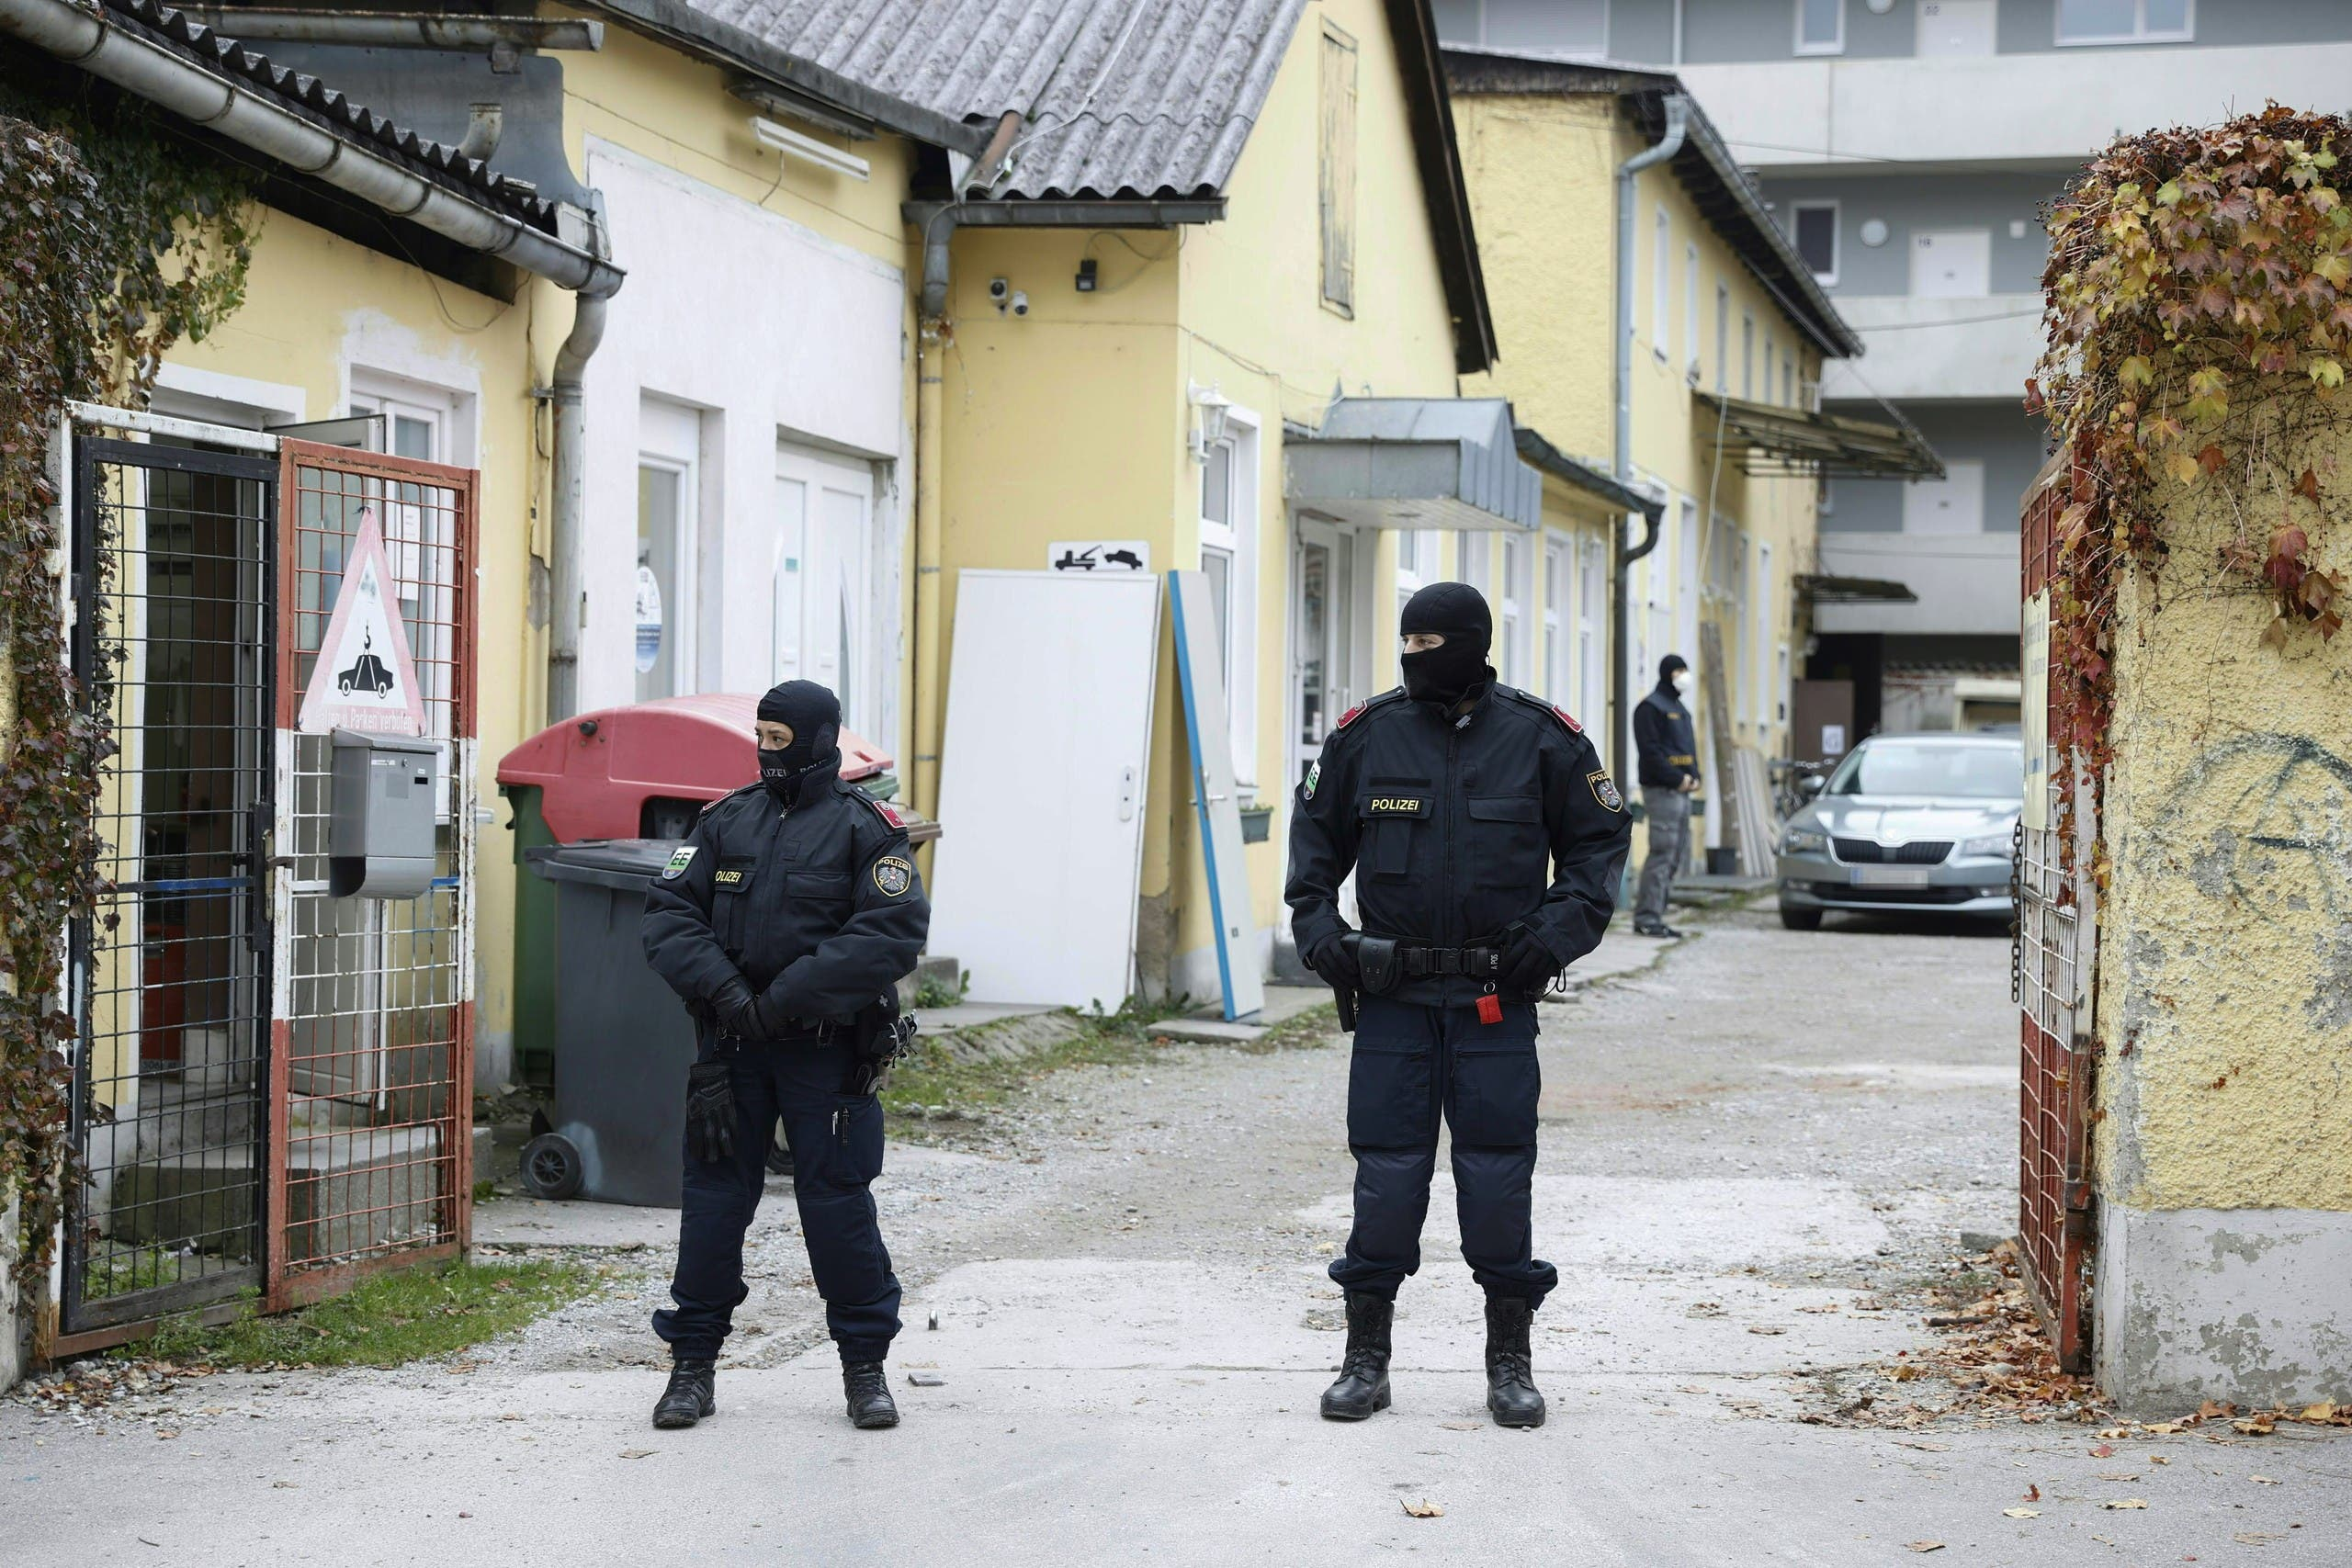 This photo taken on November 9, 2020 in Graz, Austria, shows the Liga Kulturverein, where a police raid, dubbed Operation Luxor, took place in the early morning. Austrian police launched raids on more than 60 addresses allegedly linked to radical Islamists in four different regions on November 9, with orders given for 30 suspects to be questioned, prosecutors said. The Styria region prosecutors' office said in a statement it was carrying out investigations against more than 70 suspects and against several associations which are suspected of belonging to and supporting the terrorist Muslim Brotherhood and Hamas organizations. (AFP)